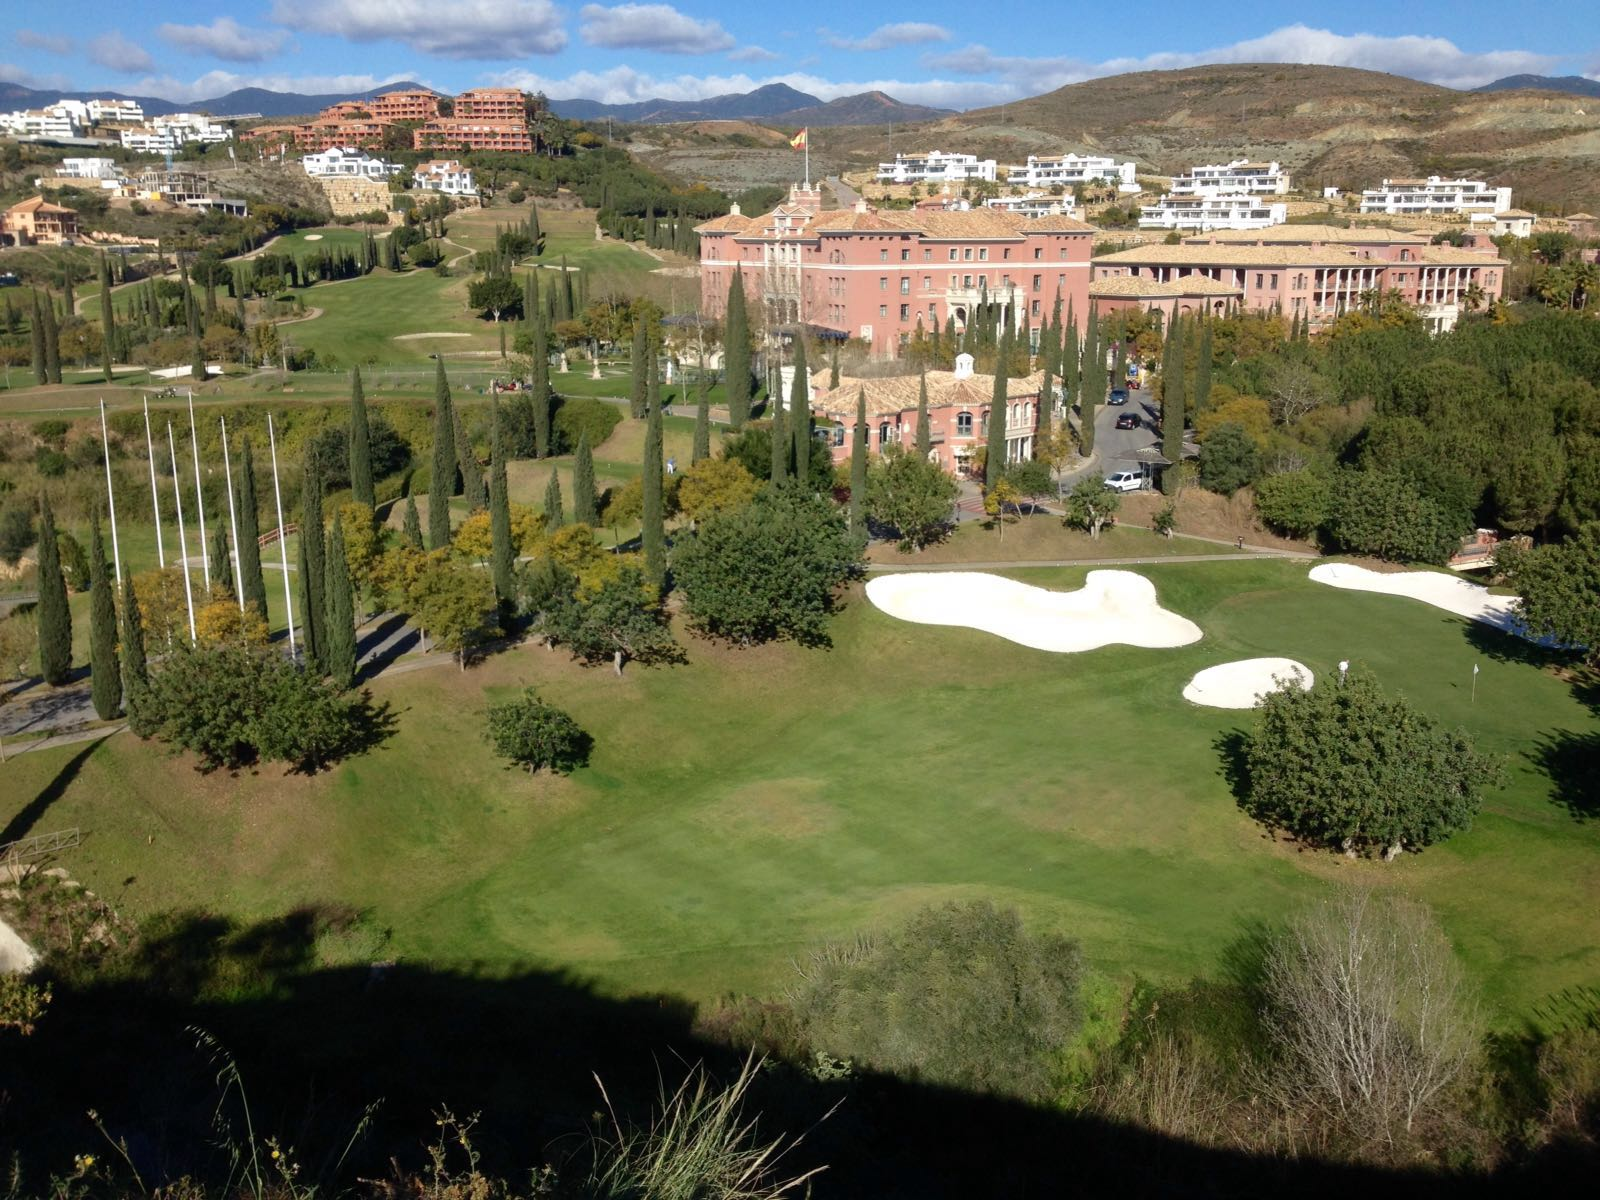 Marbella golf resort